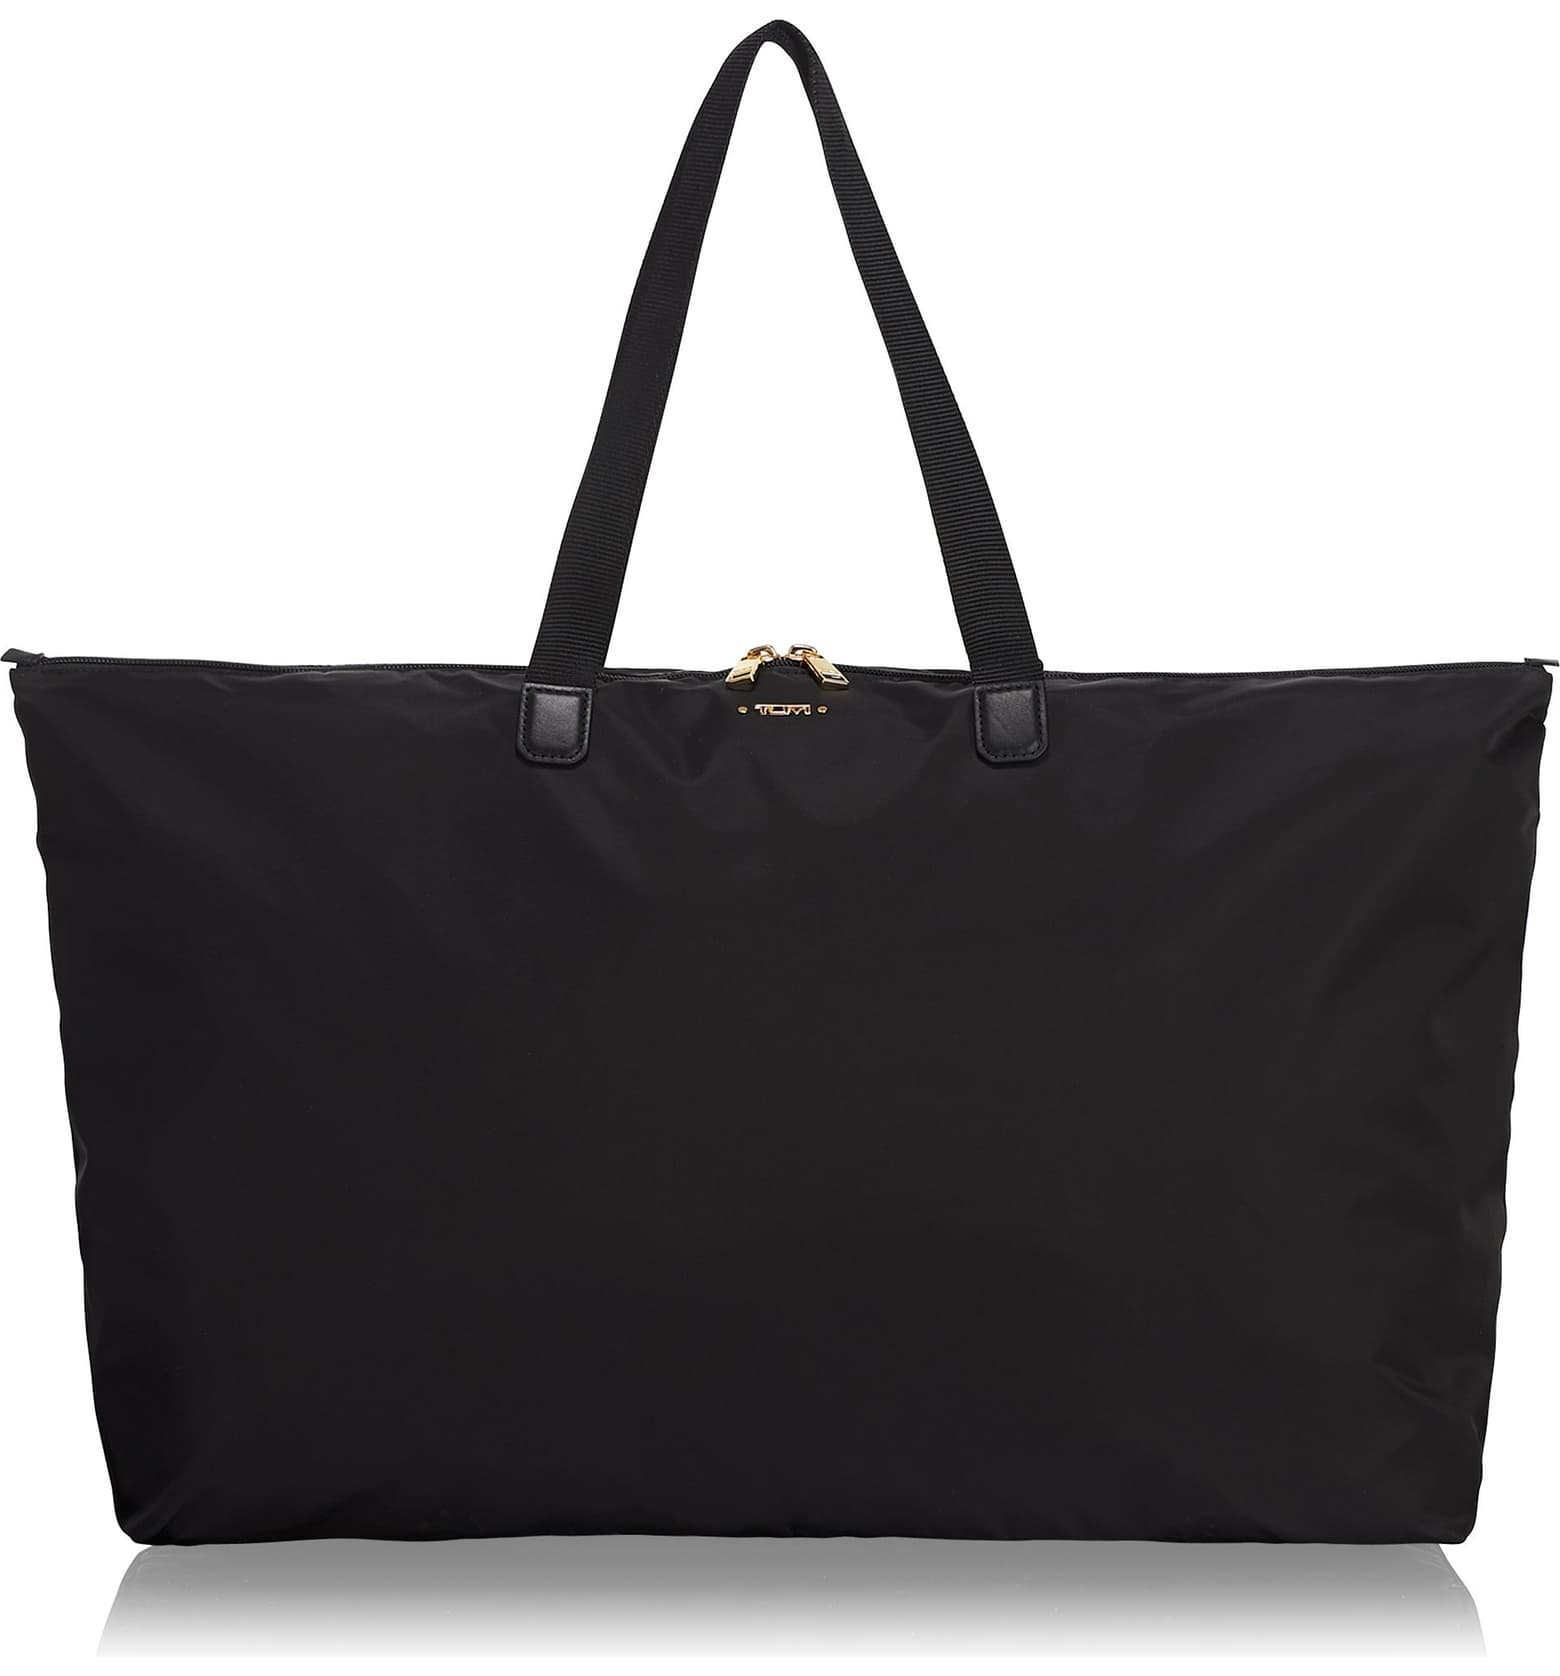 Black Just In Case Tote, $100 at Nordstrom